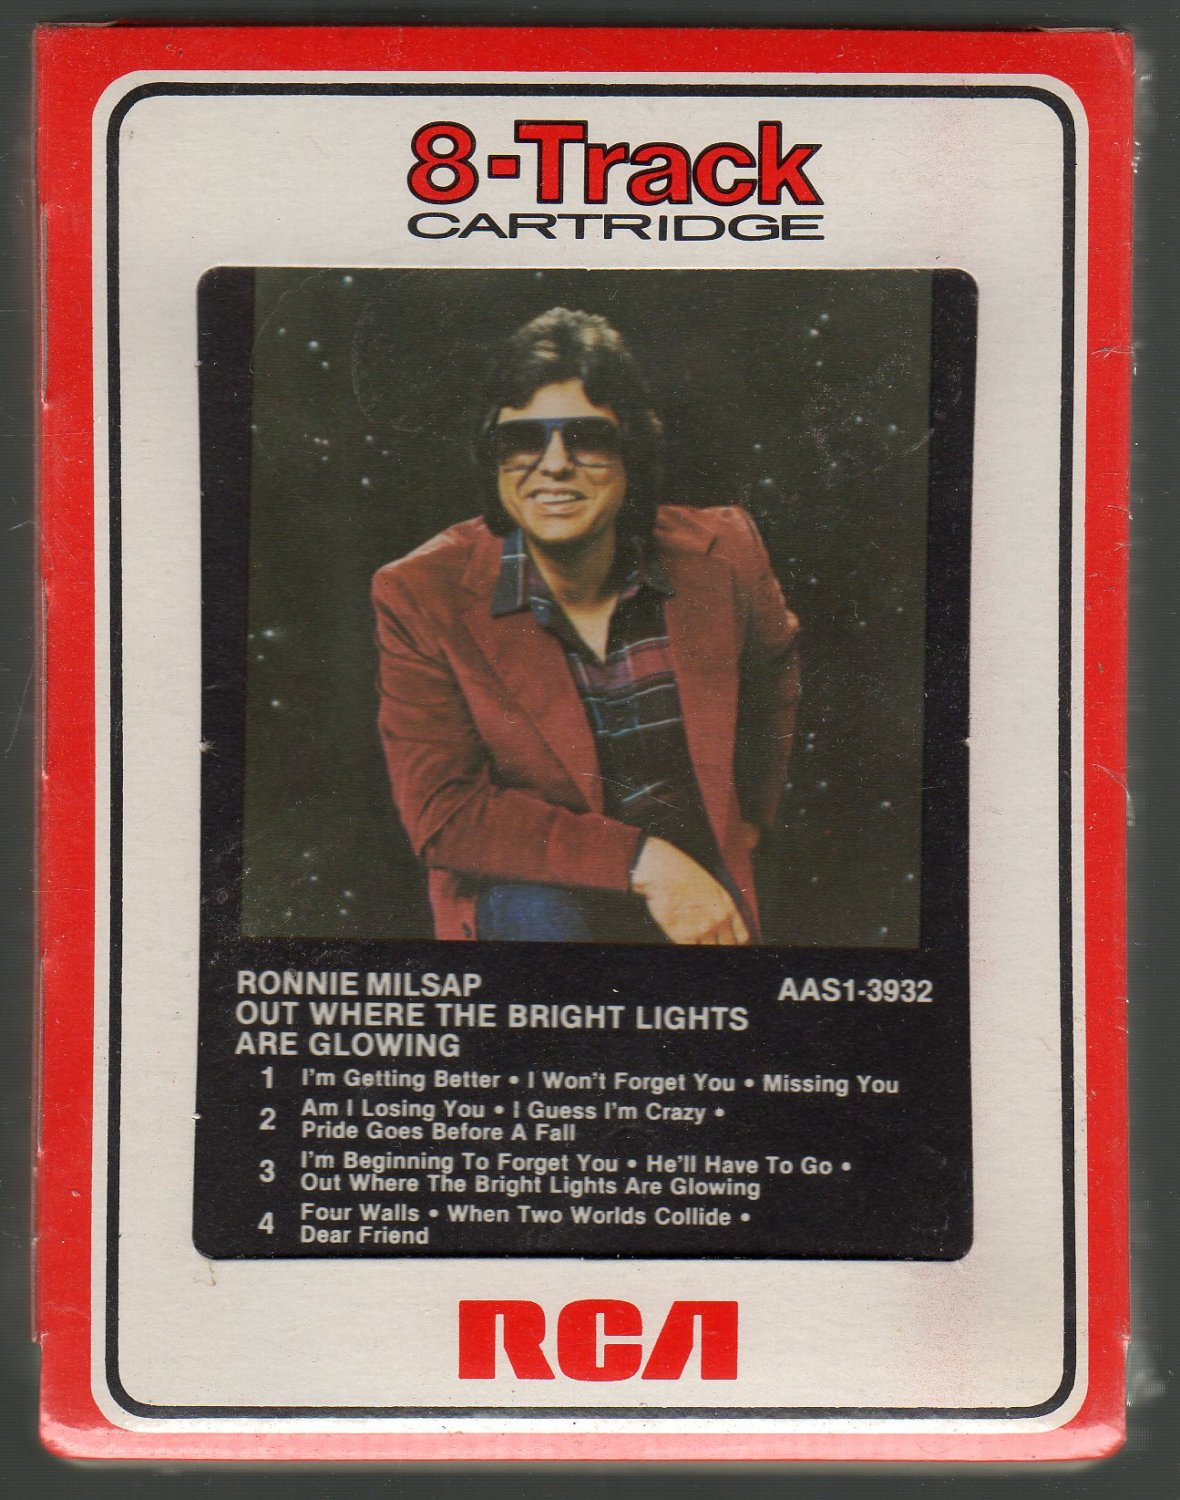 Ronnie Milsap - Out Where The Bright Lights Are Glowing RCA Sealed 8-track tape